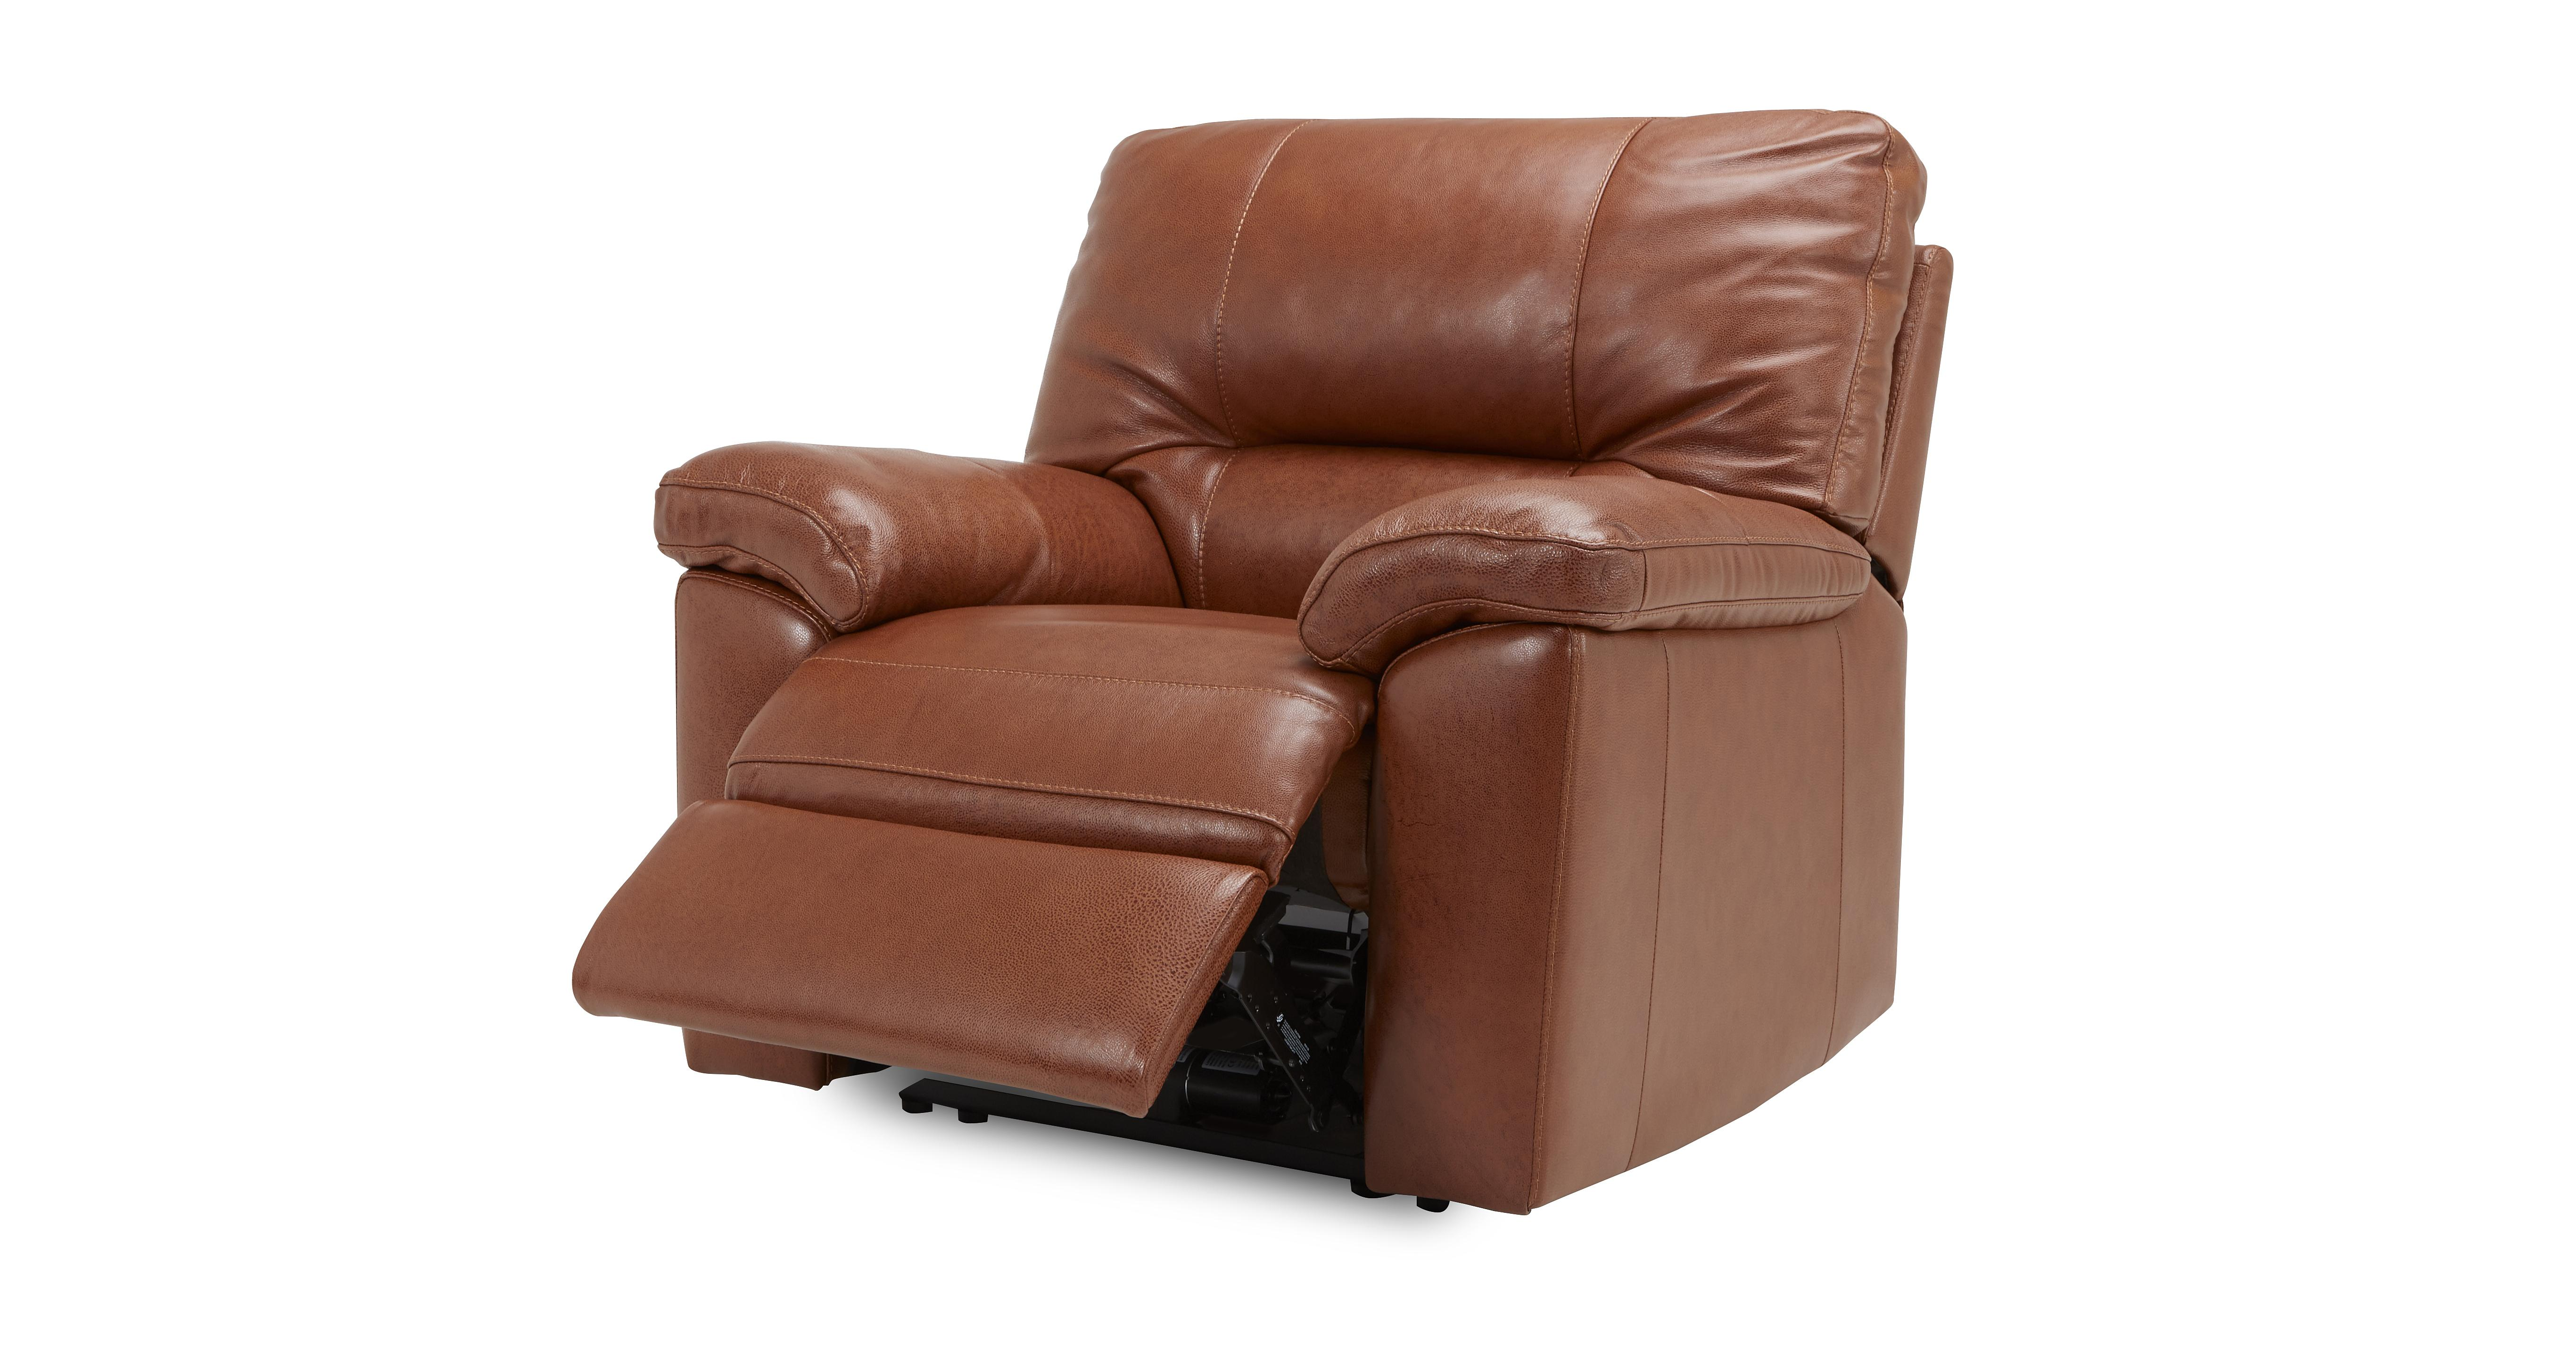 Dalmore Manual Recliner Chair Brazil With Leather Look